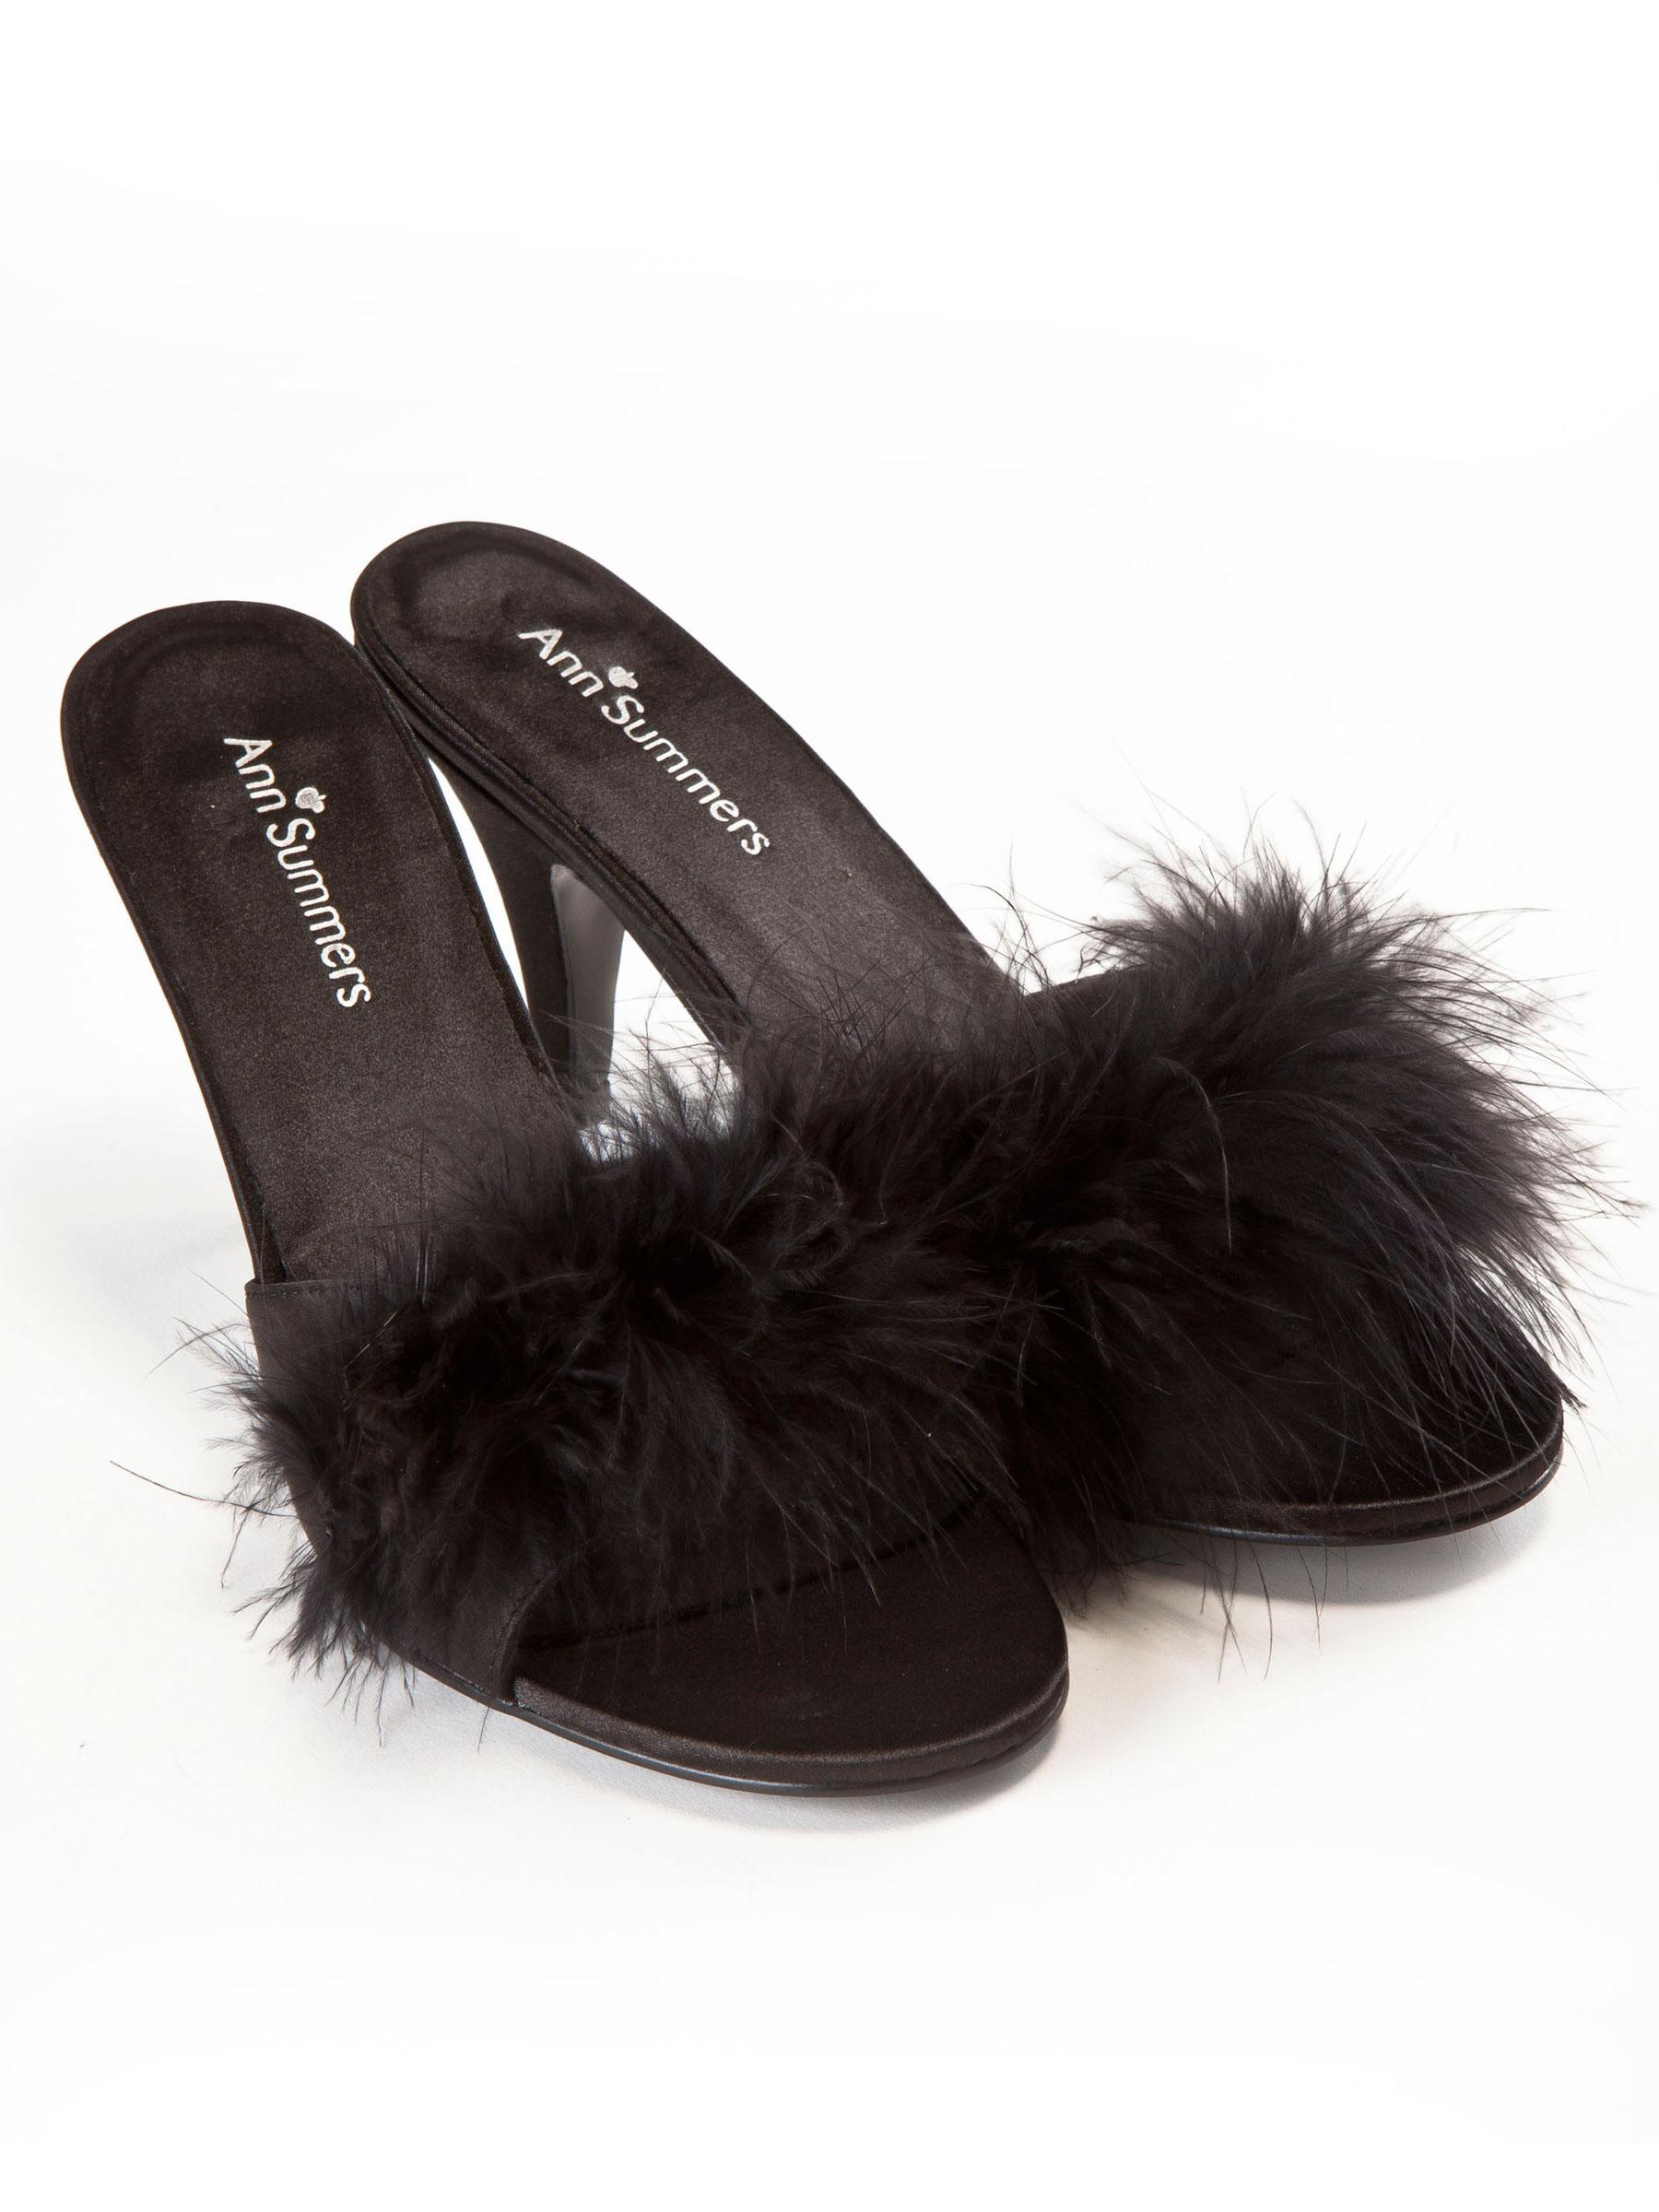 ann summers womens black marabou mules sexy bedroom slippers lingerie accessory ebay